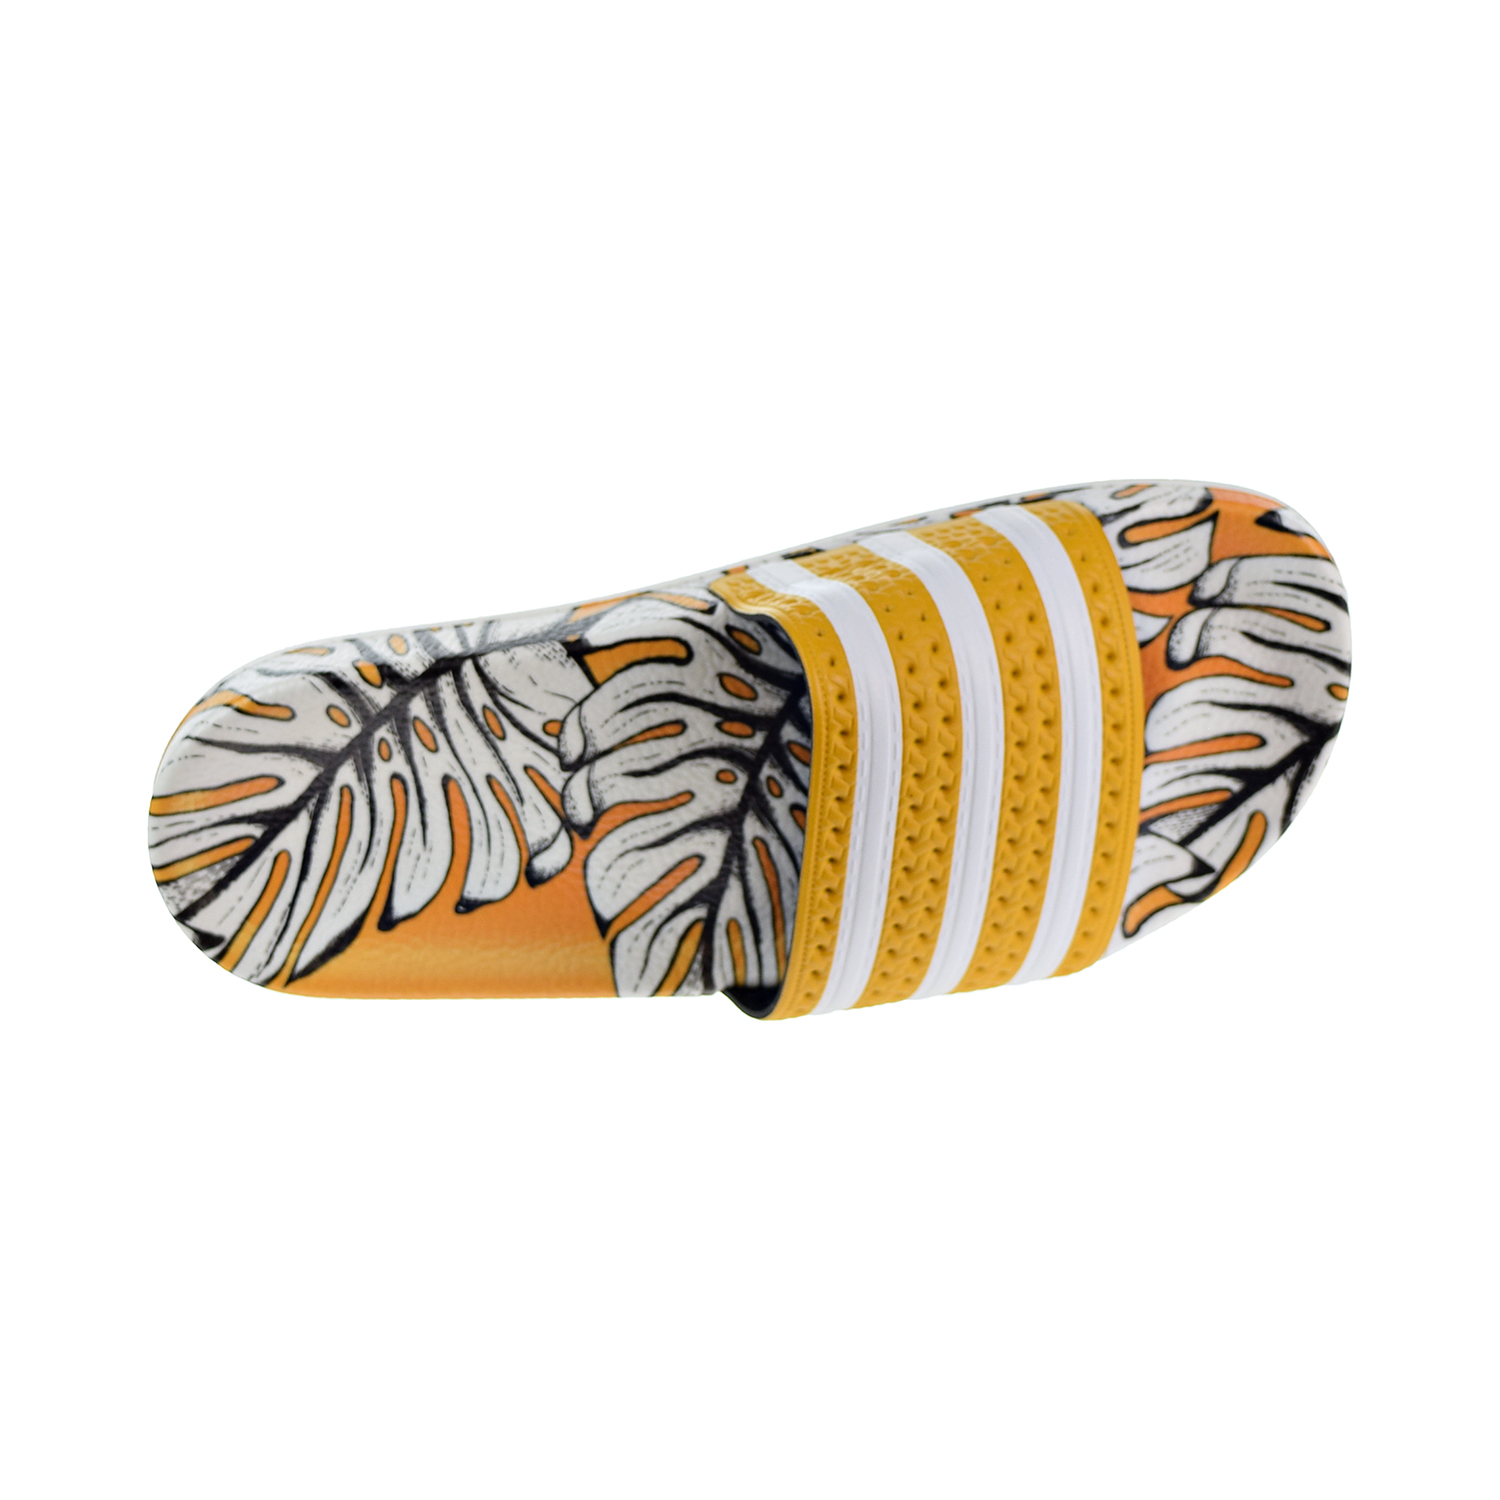 63f8f1ecb12fd5 Details about Adidas Adilette Women s Slides Yellow Off White Craft Gold  D96682